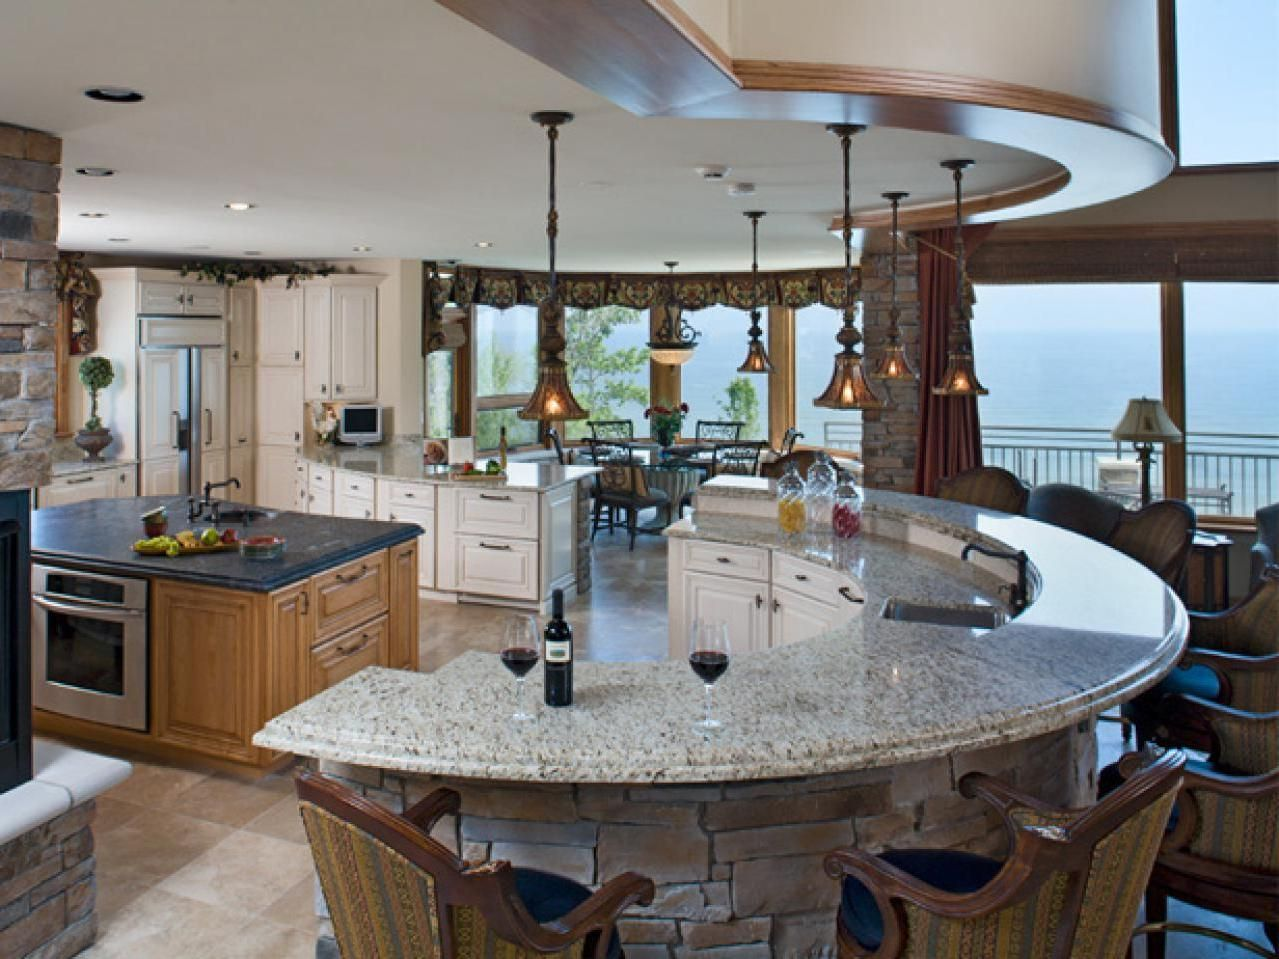 Kitchen Design With Round Island Classic Dream Kitchen Design With Half Round Shape